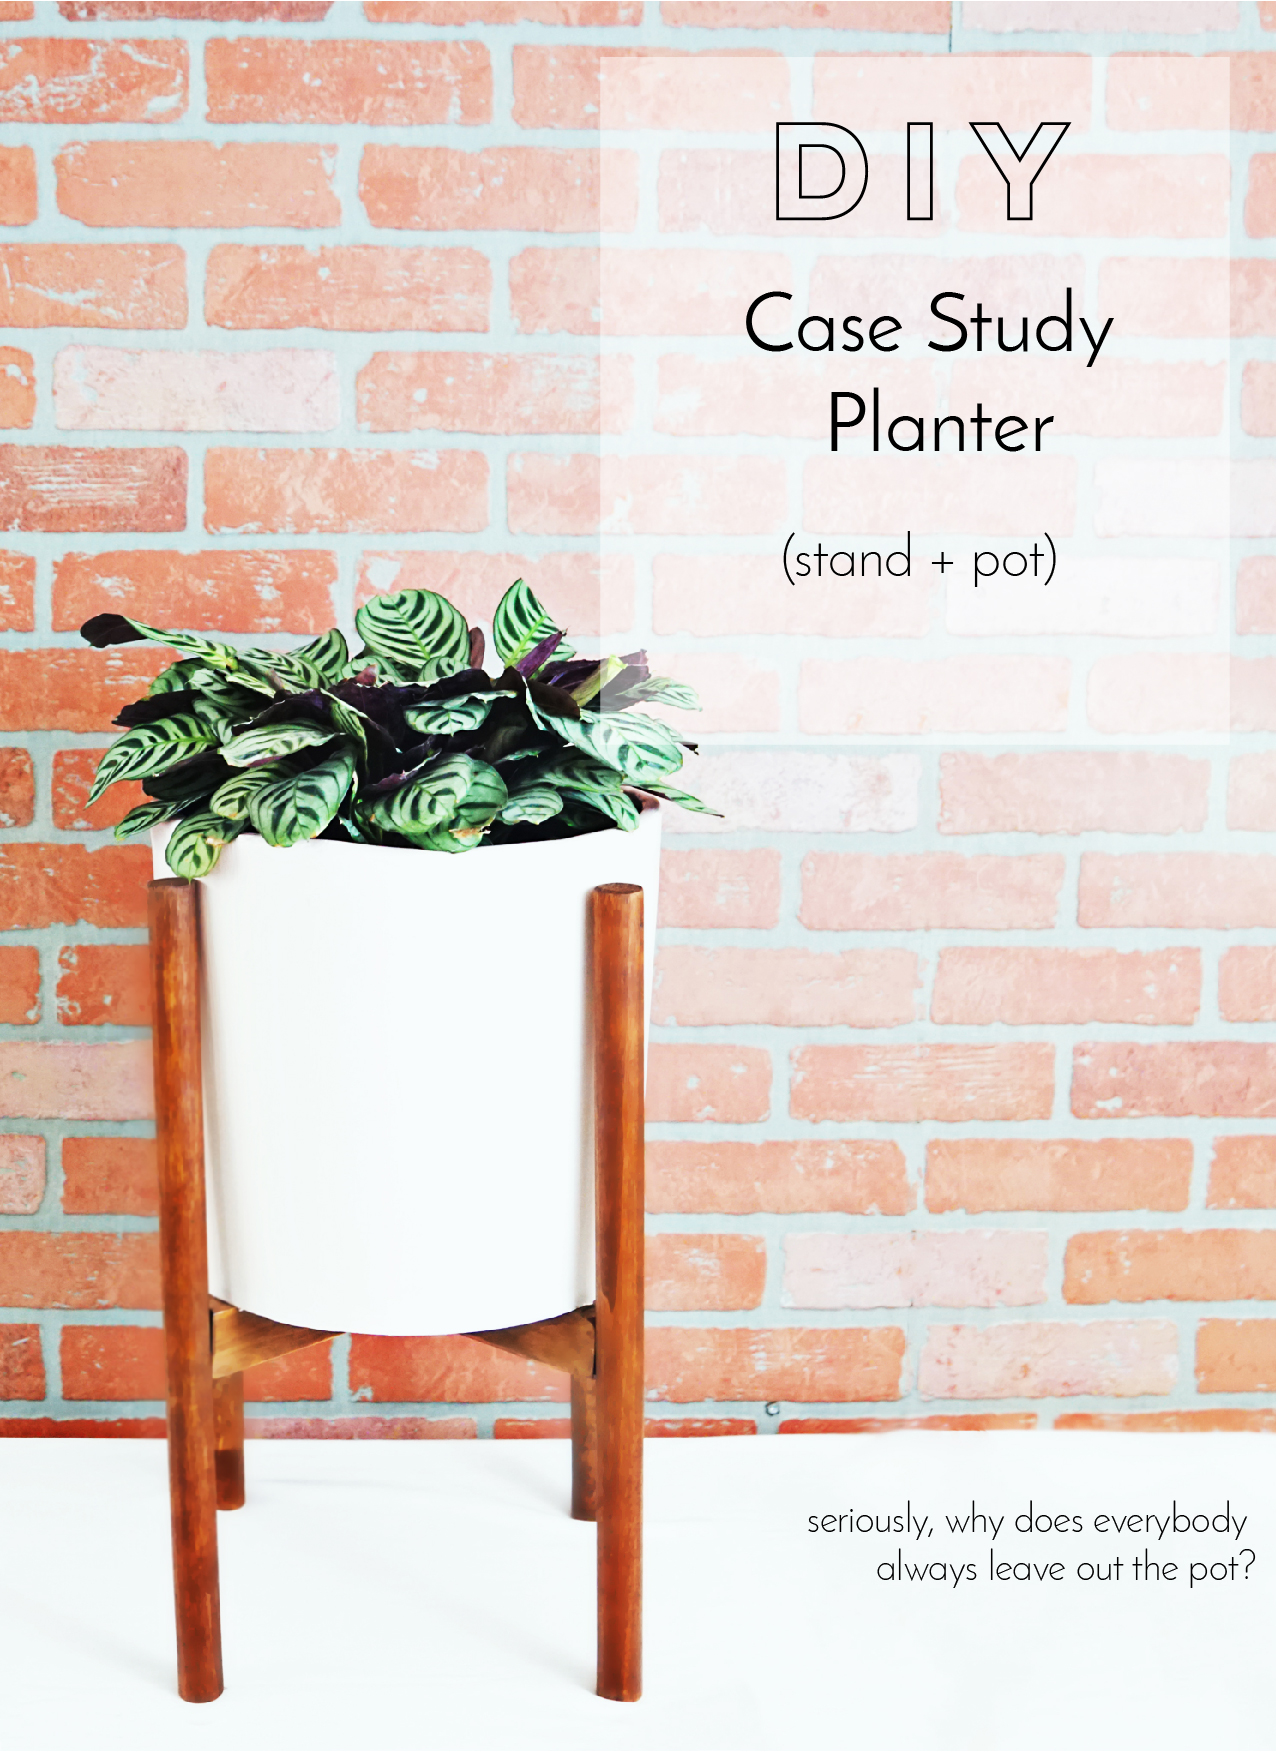 Can You Believe That Thereu0027s No Wikipedia Article For Modernicau0027s Case  Study Planter? (Of Course You Can, But I Was Legit Surprised Until I Came  To My ...